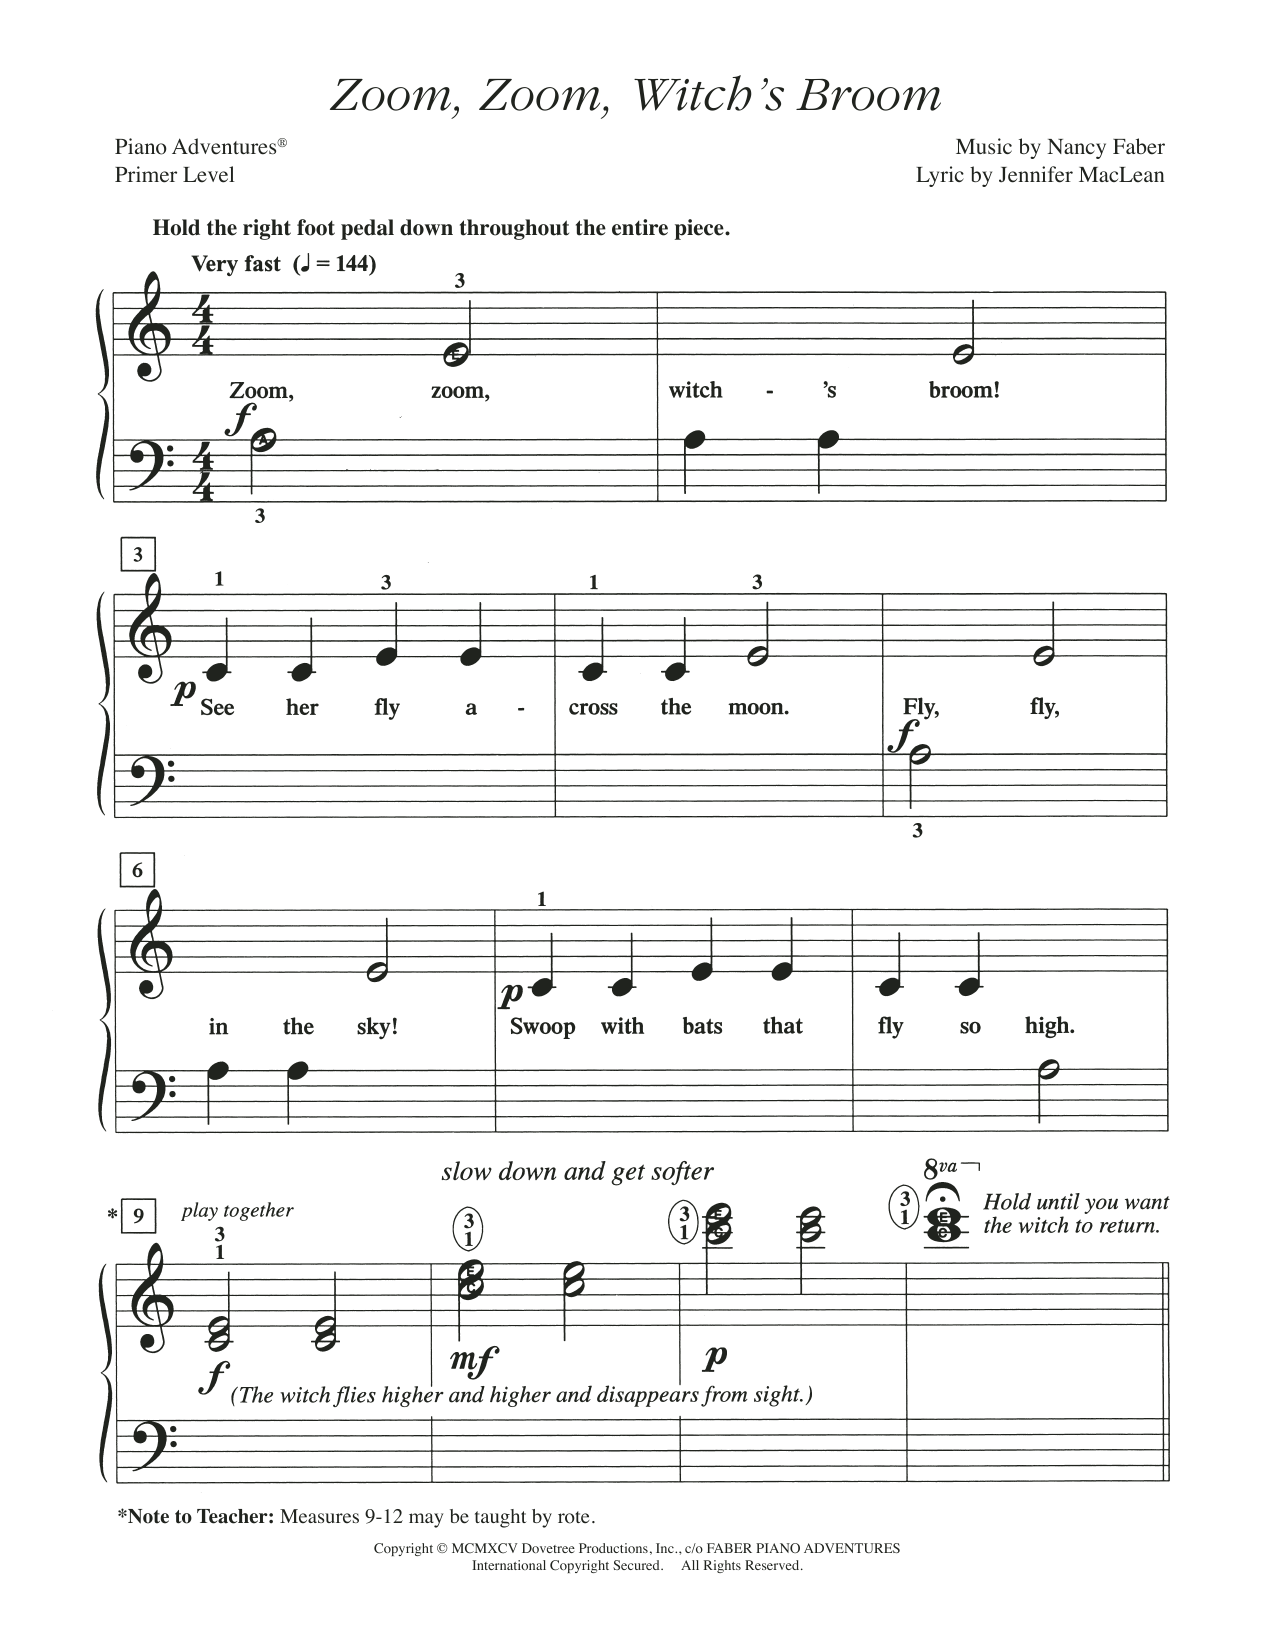 Zoom, Zoom, Witch's Broom Sheet Music